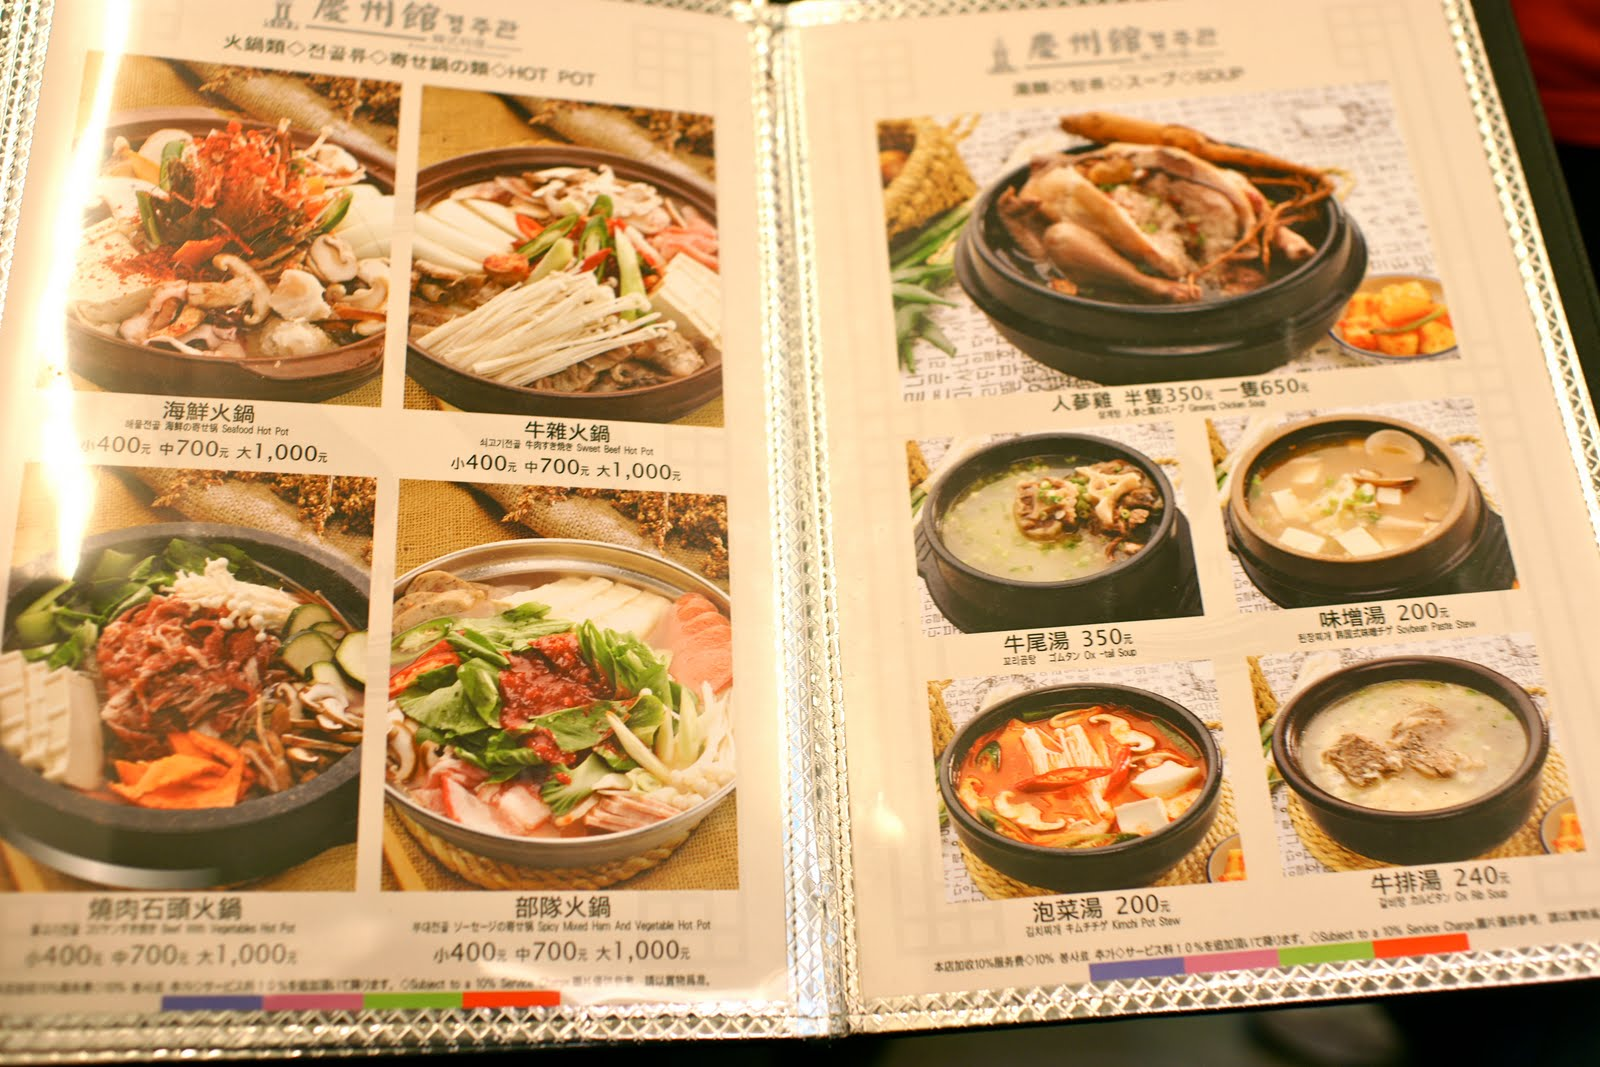 a hungry girl 39 s guide to taipei korean i strongly recommend kyung ju korean restaurant. Black Bedroom Furniture Sets. Home Design Ideas